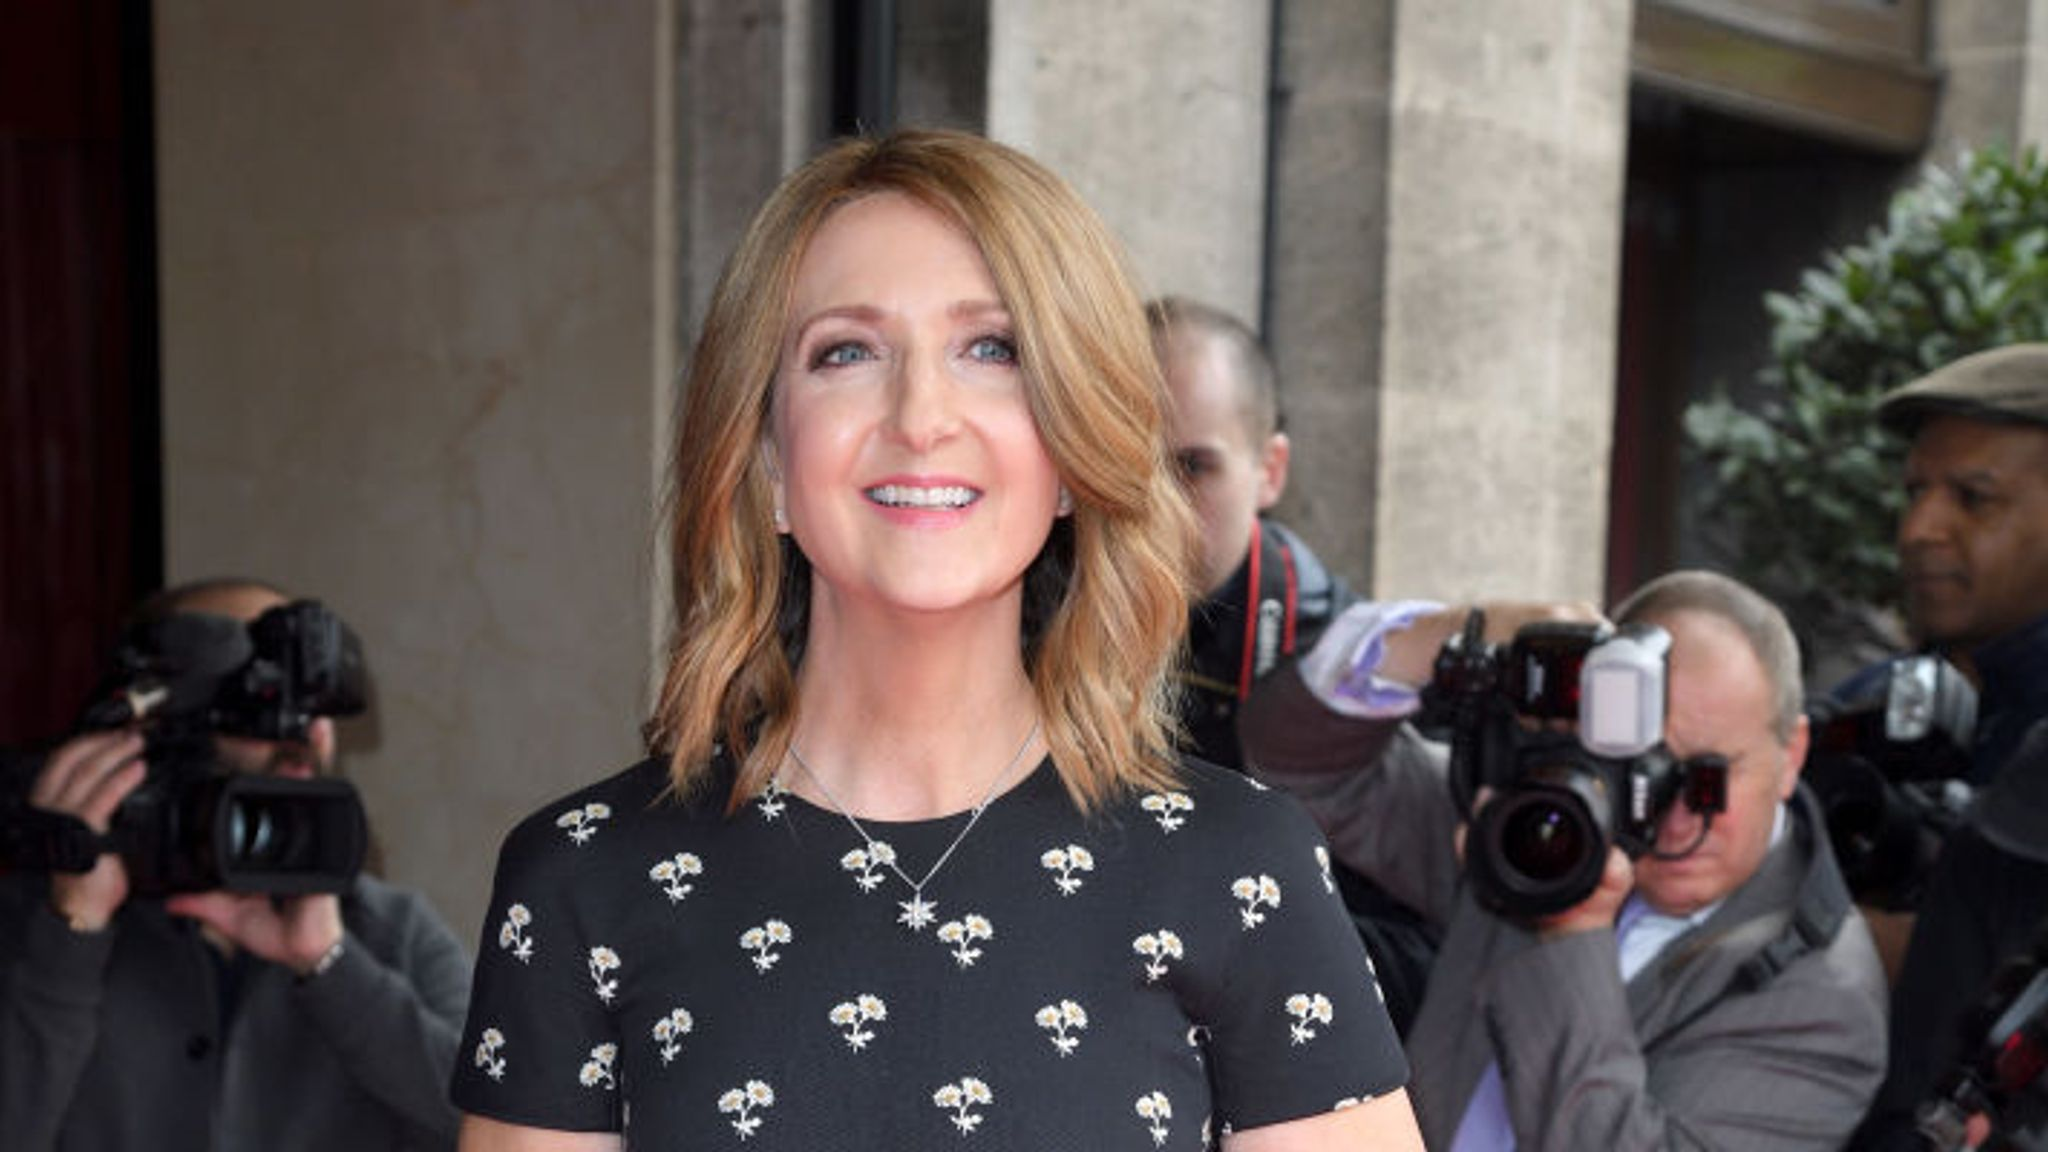 Victoria Derbyshire Apologises For Saying She Would Break Rule Of Six At Christmas Uk News Sky News